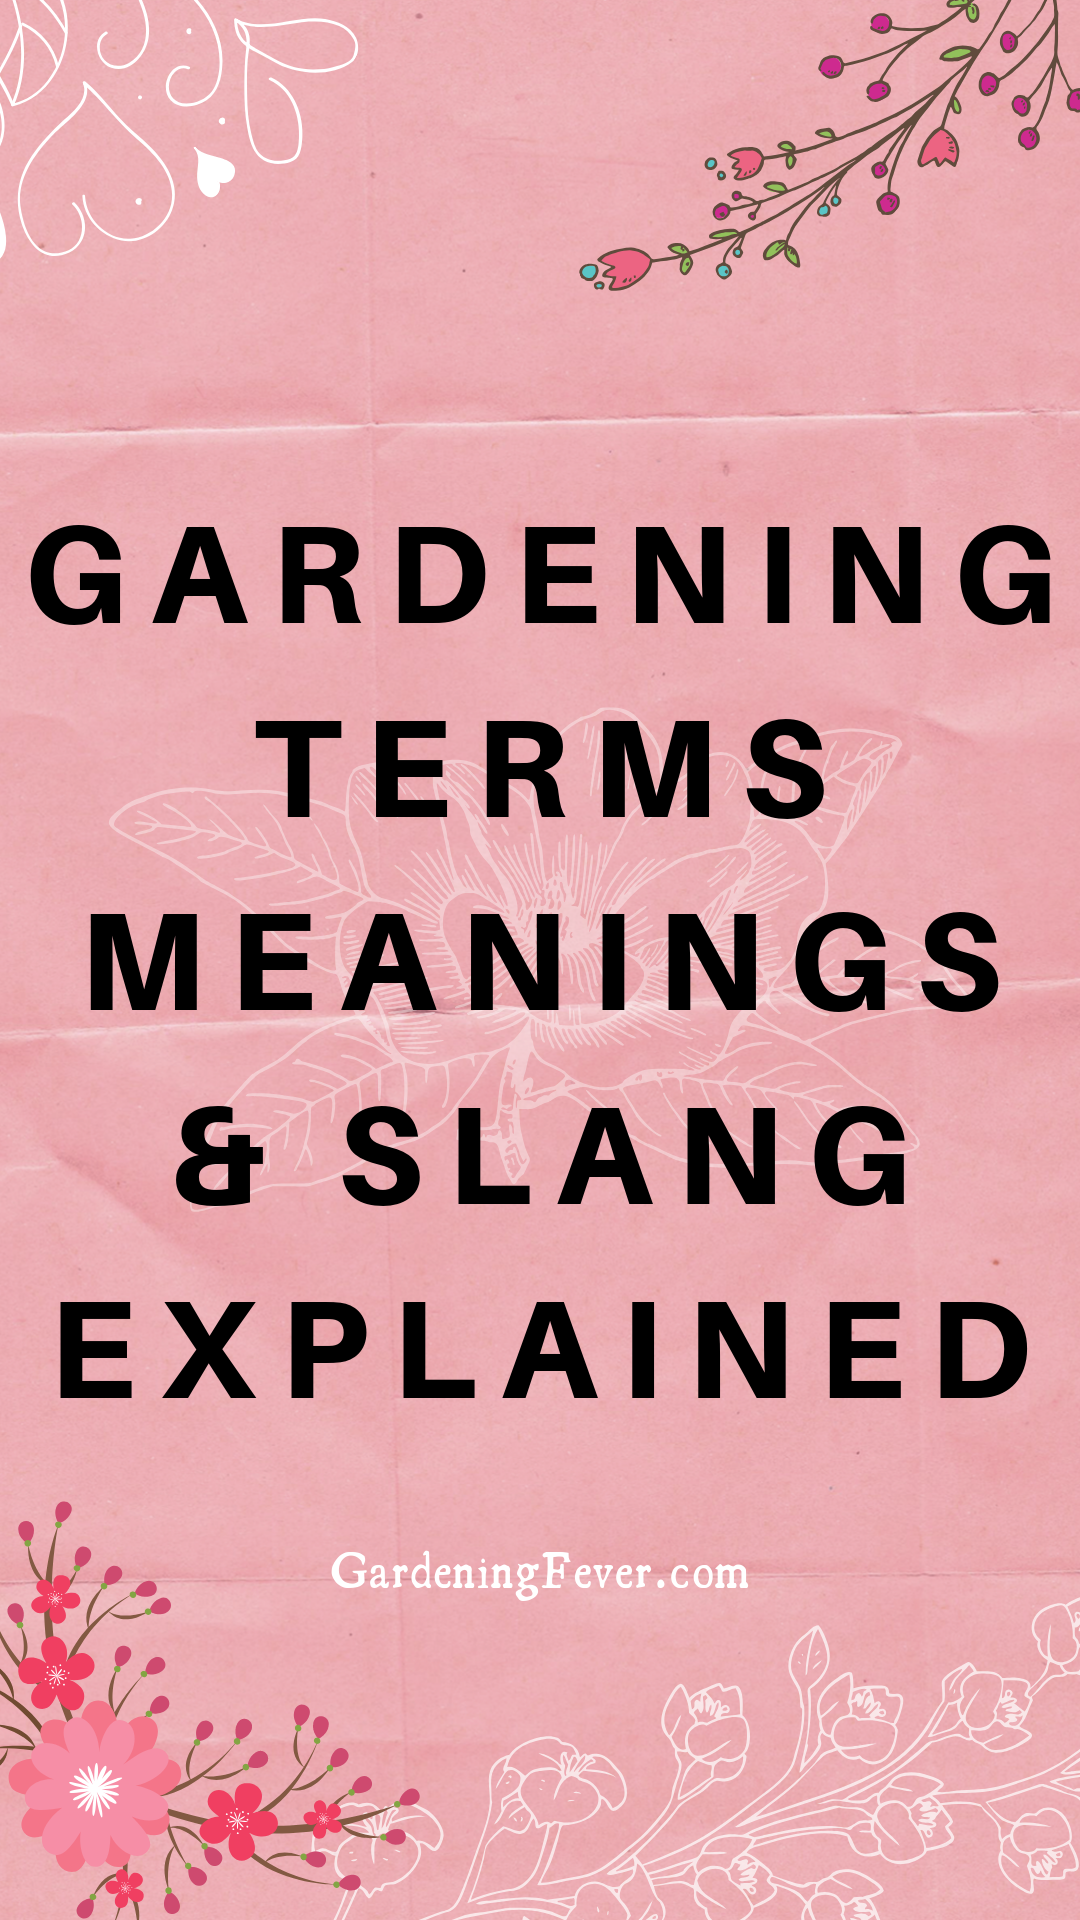 Gardening Terms Meanings Slang Explained Gardening Fever How To Become Successful Growing Organic Vegetables Gardening For Beginners